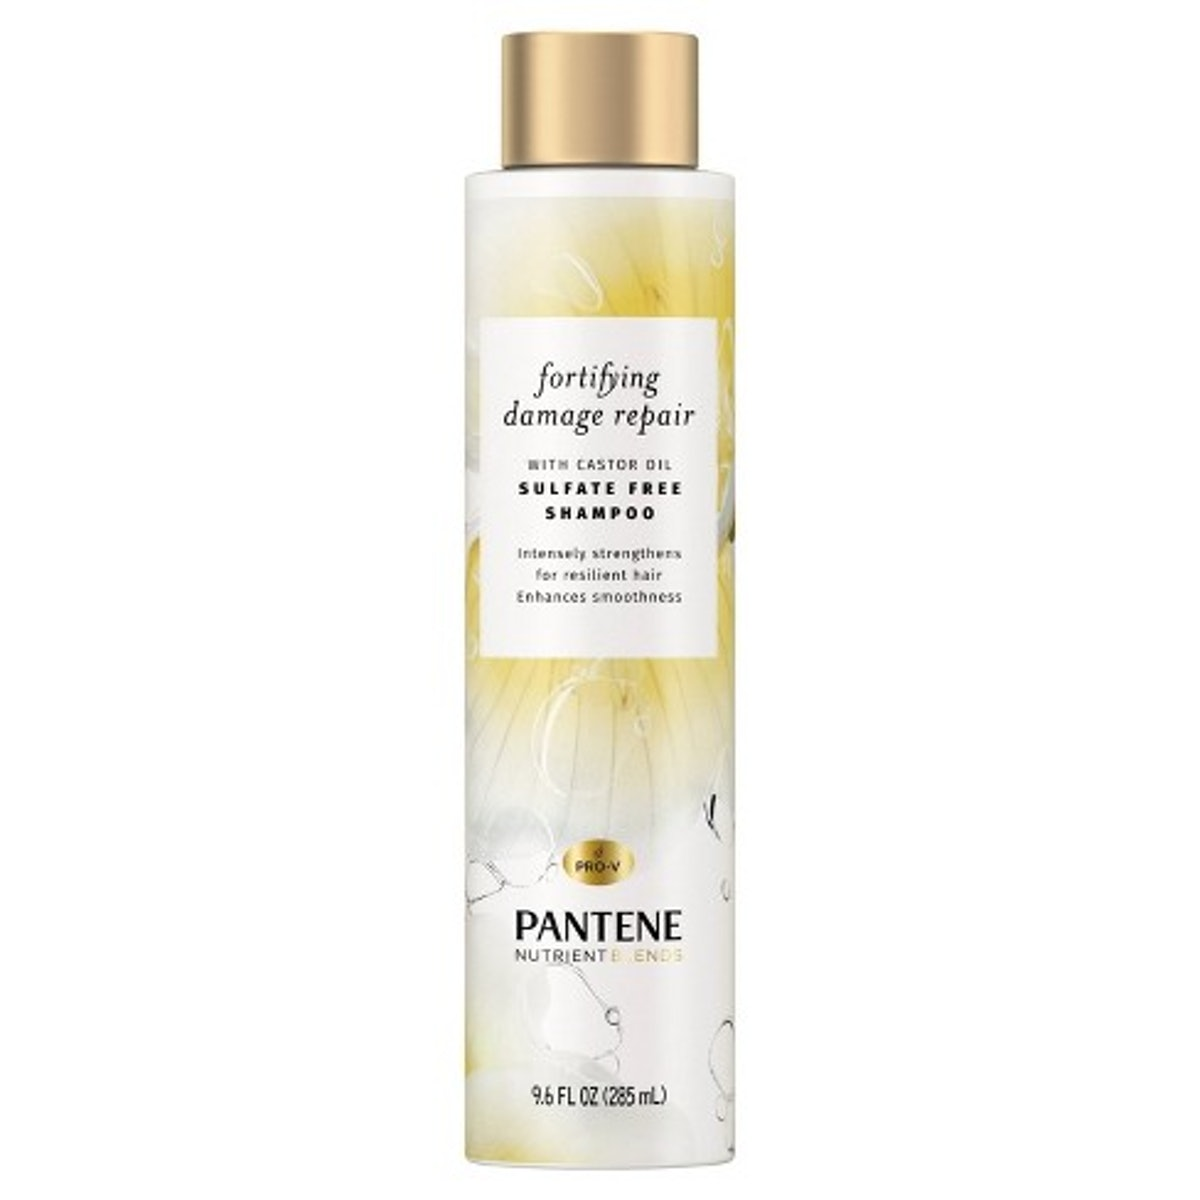 Pantene Nutrient Blends Sulfate Free Shampoo With Castor Oil